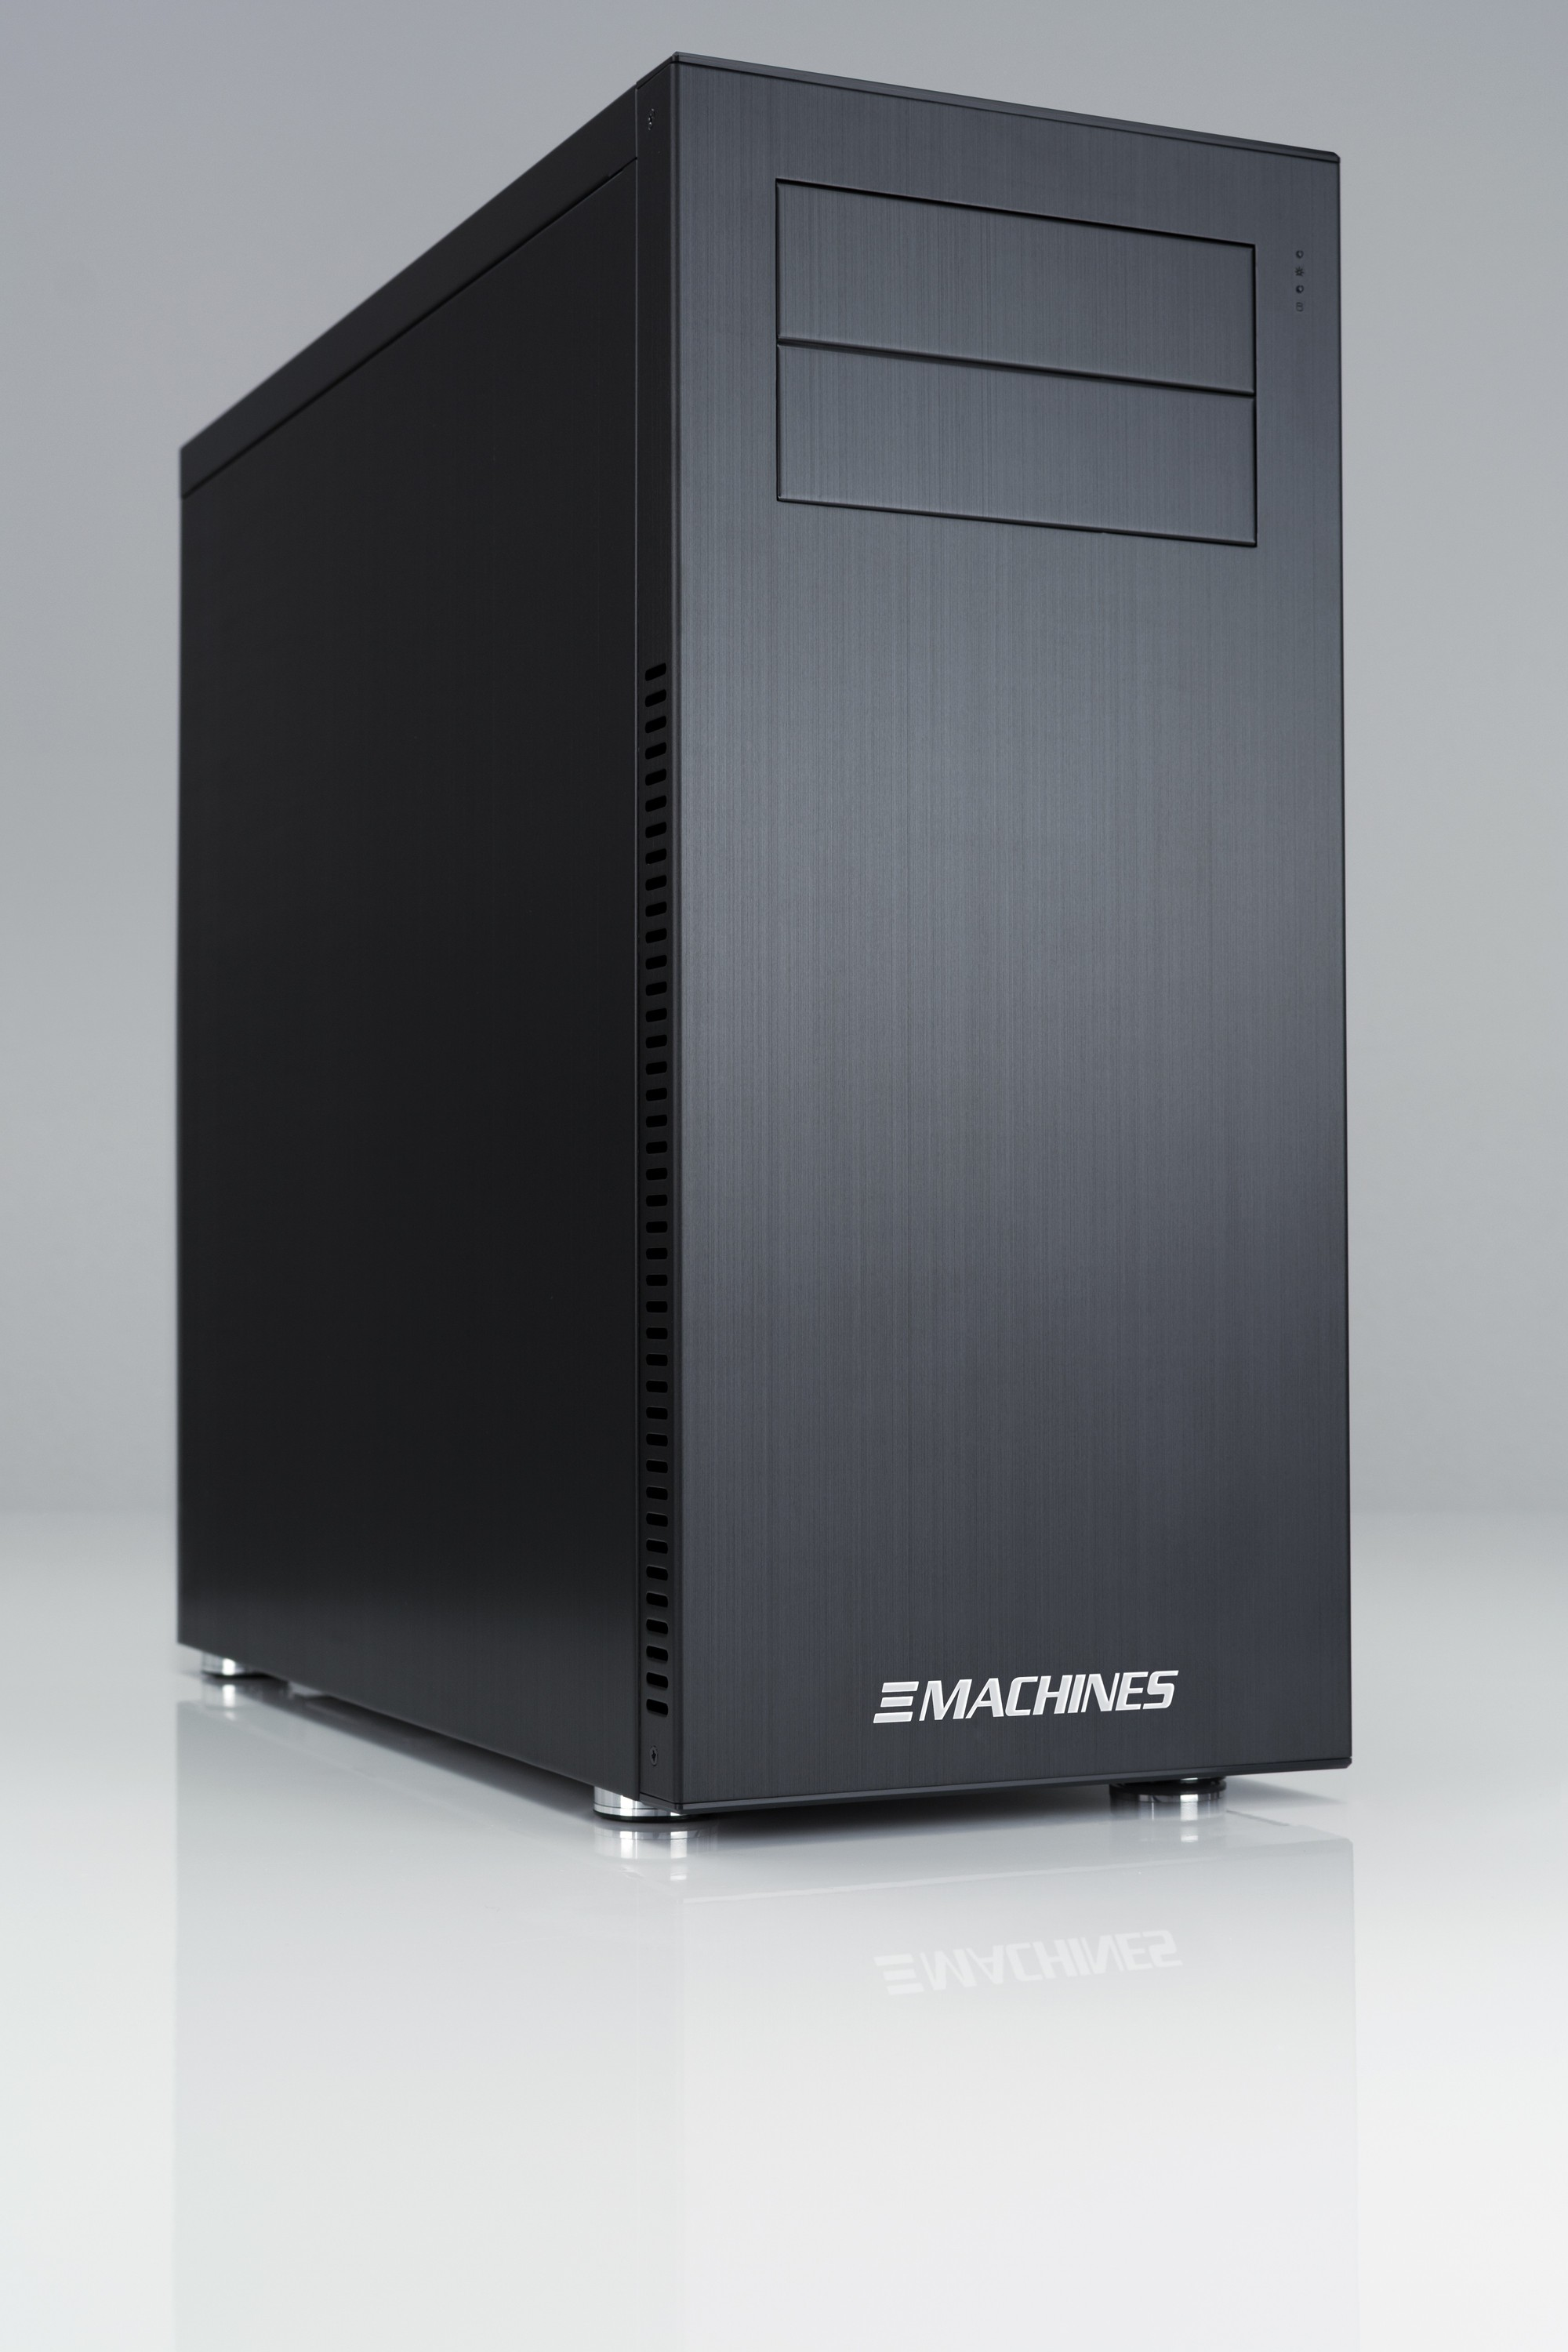 News: XI-Machines mit neuer Einstiegs-Workstation C1